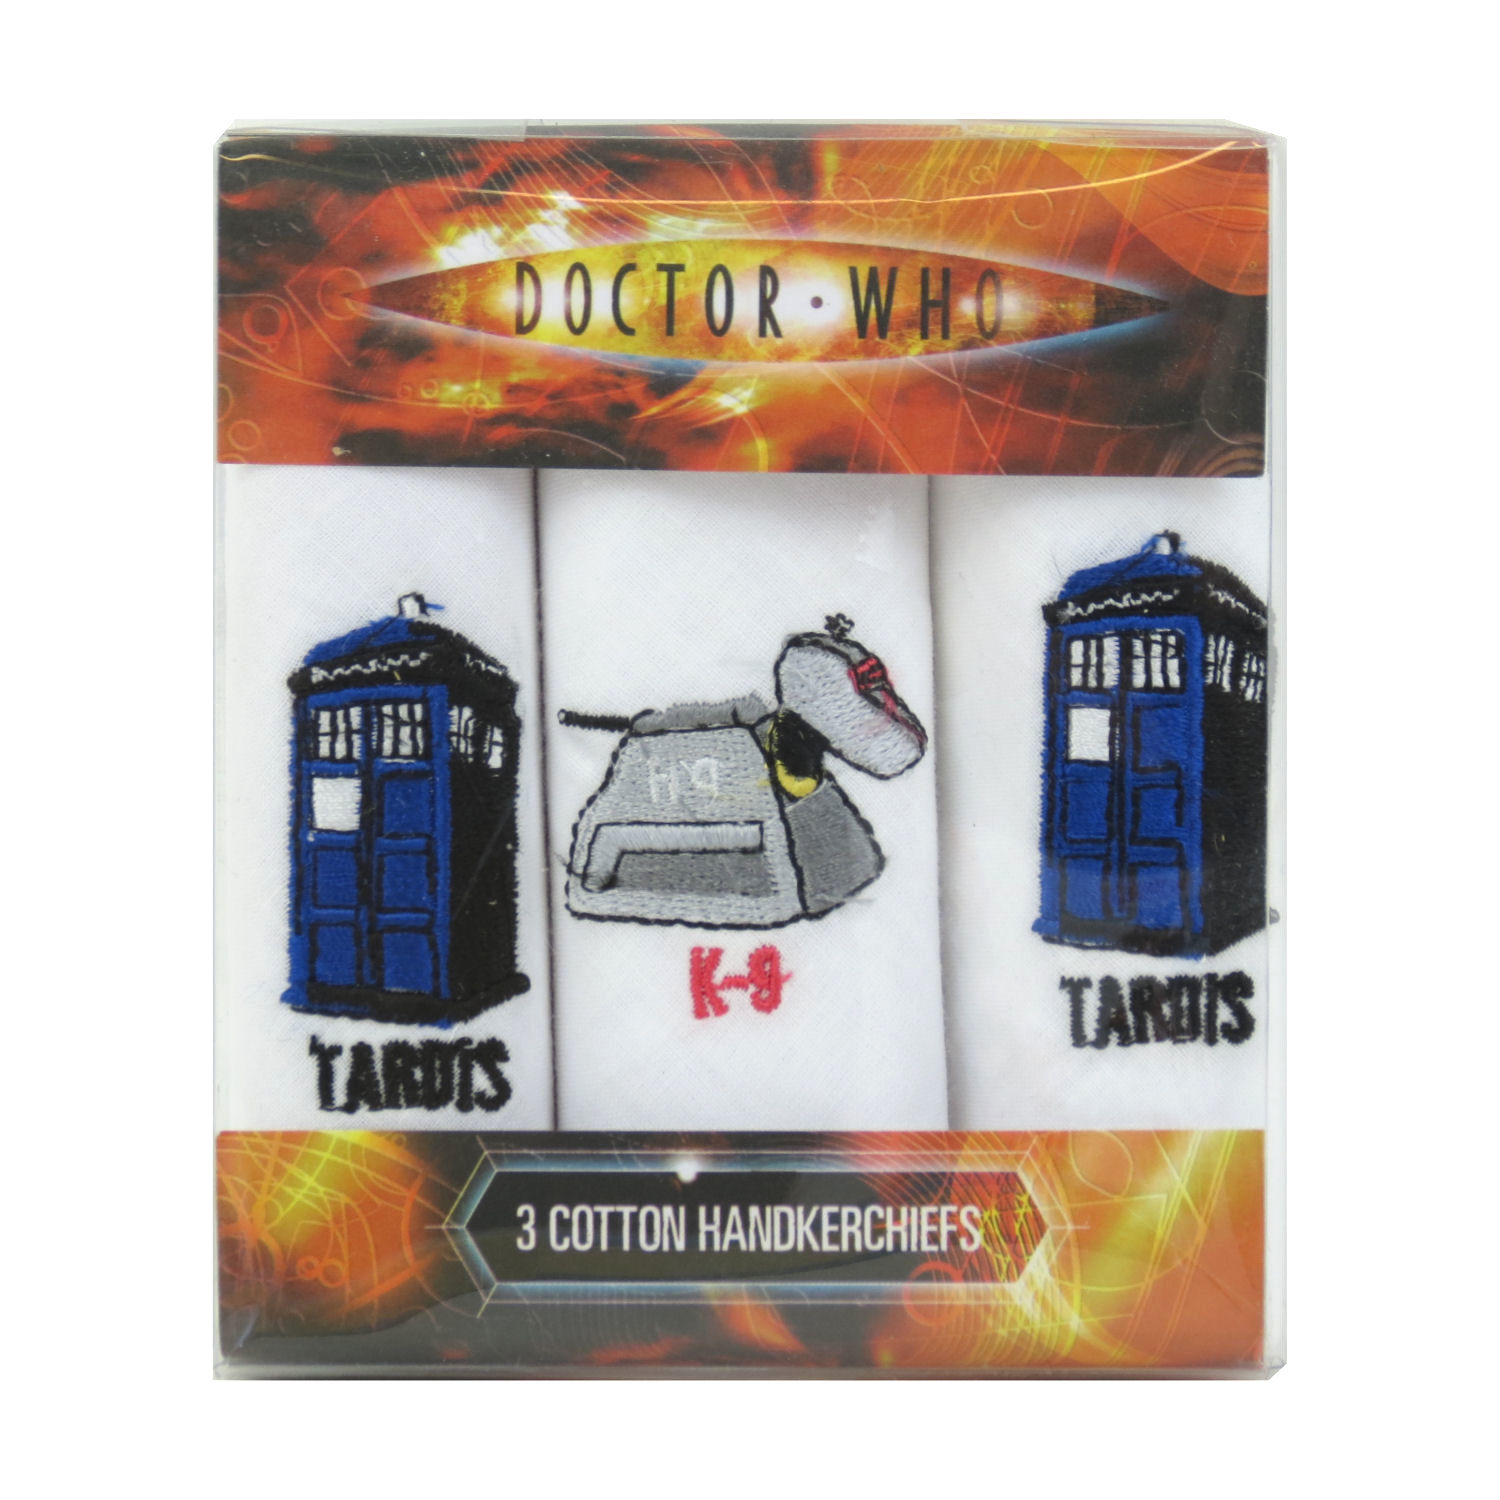 Doctor Who Tardis, K-9, Tardis Pack of 3 Hankies